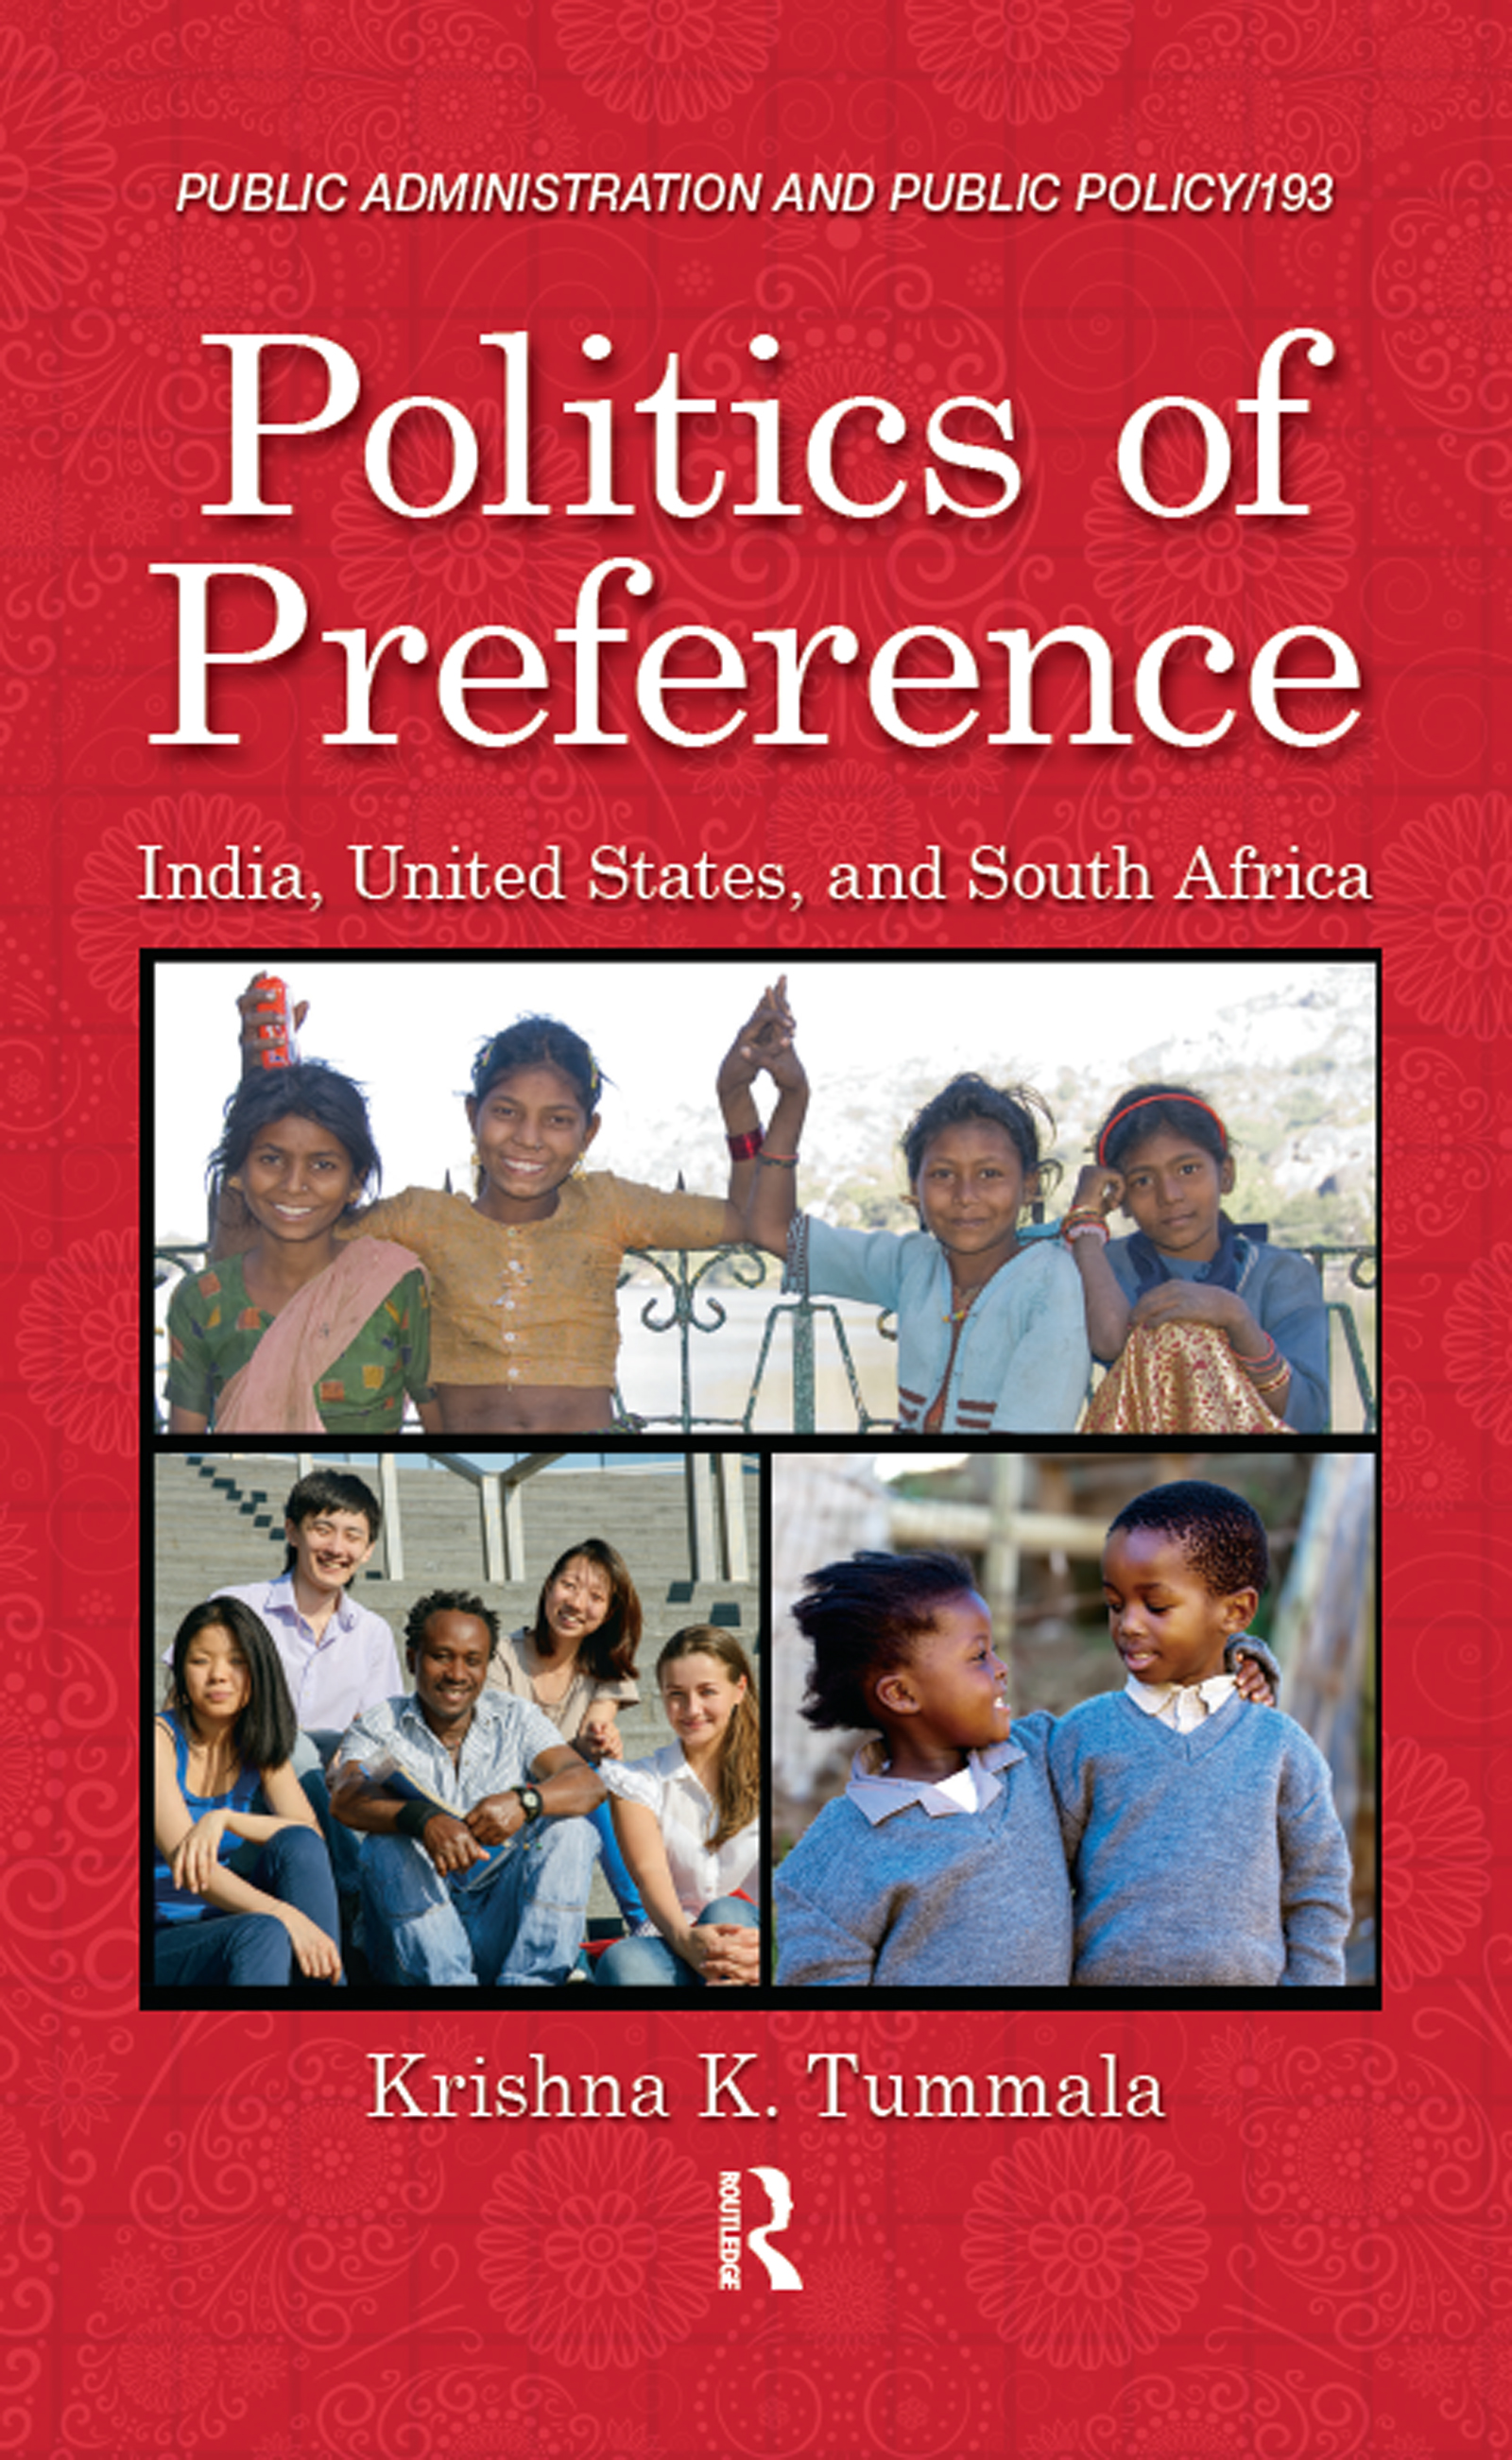 Politics of Preference: India, United States, and South Africa book cover